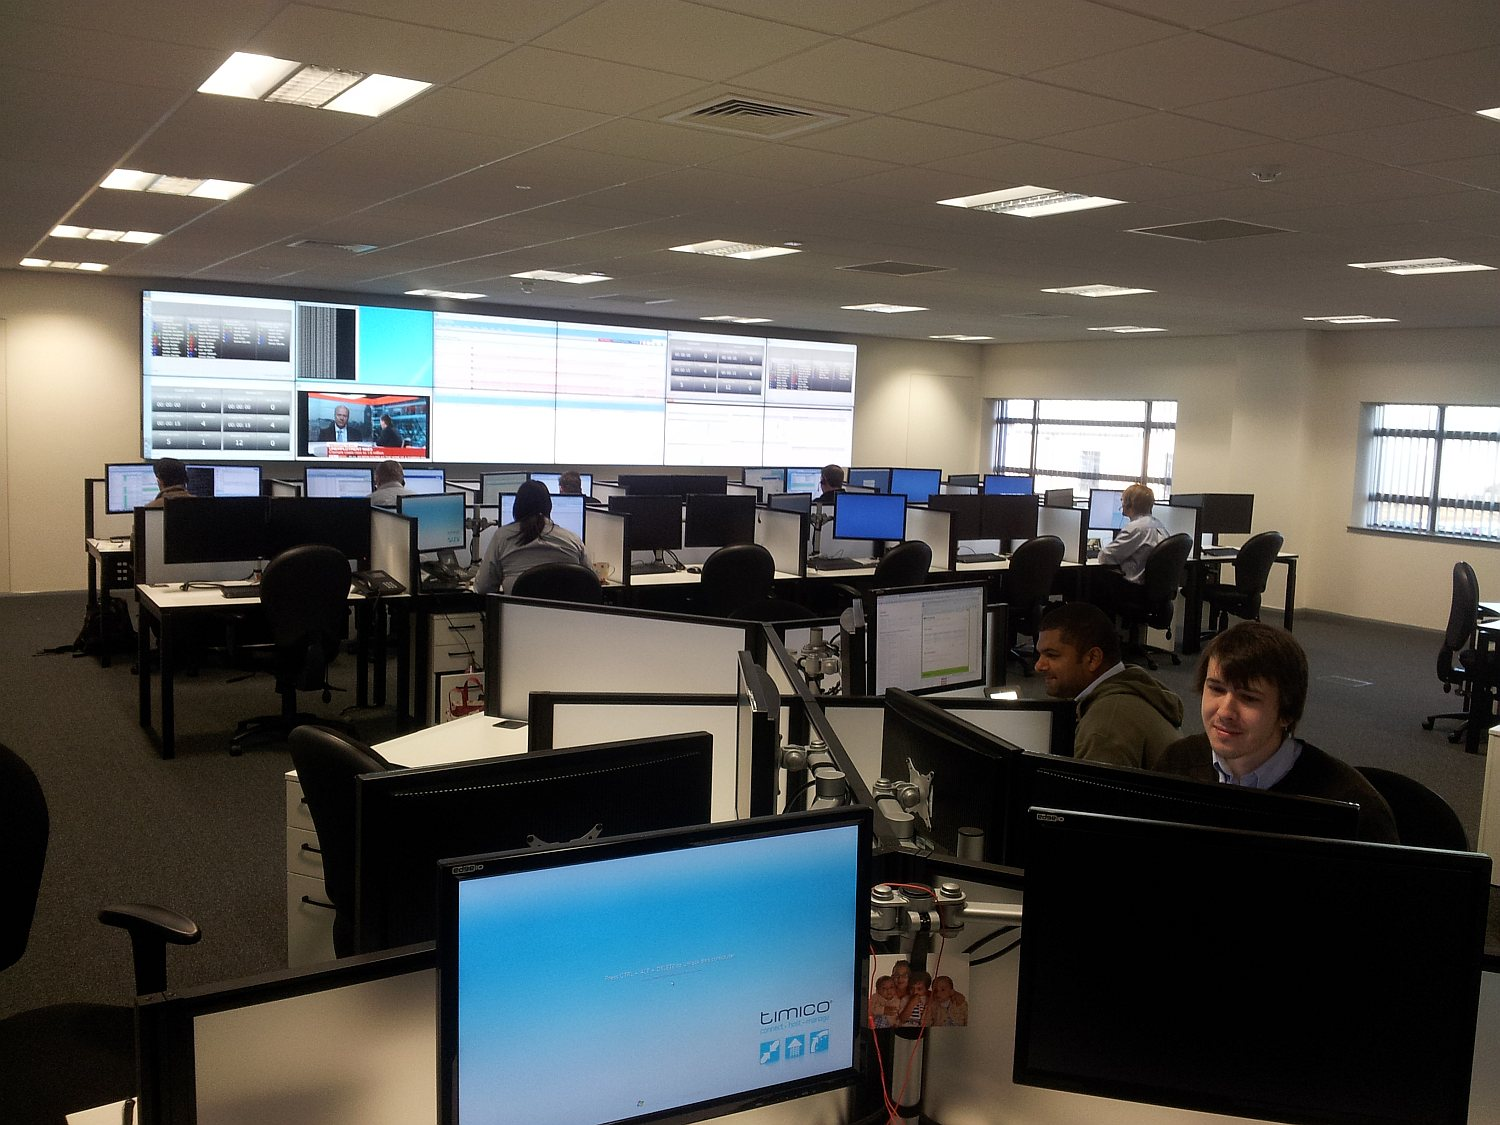 broadband Network Operations Centre